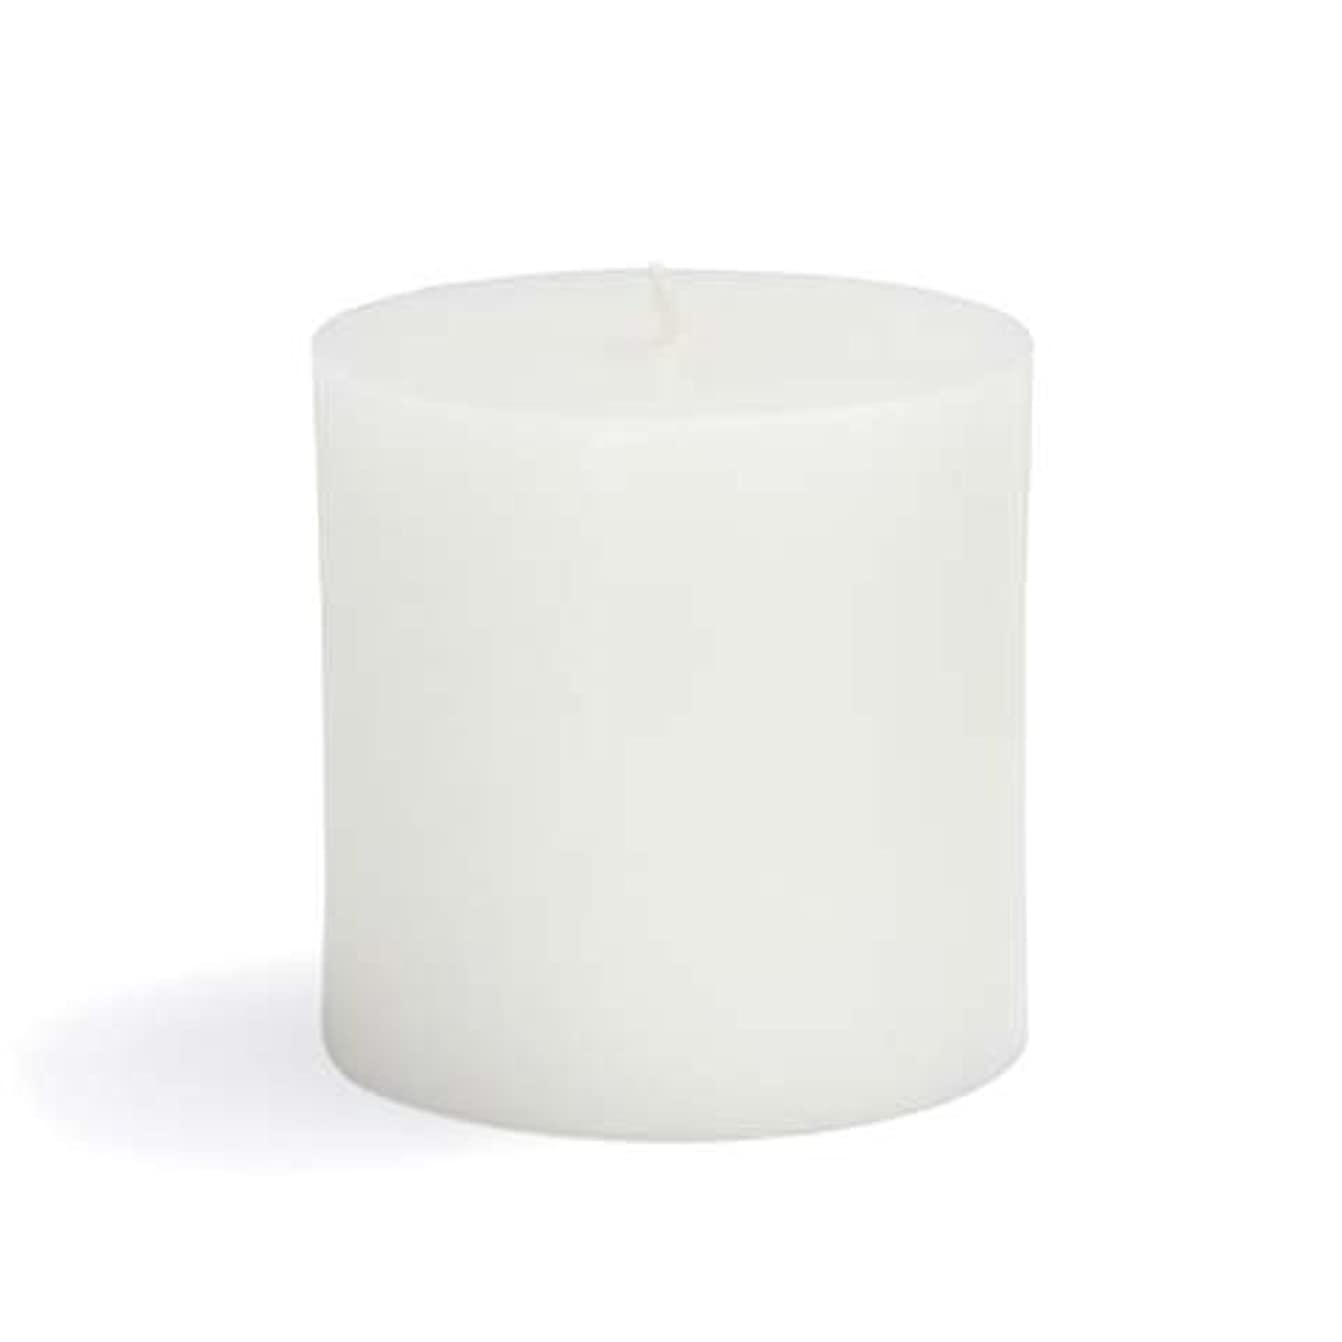 Zest Candle CPZ-071-12 3 x 3 in. White Pillar Candles -12pcs-Case- Bulk